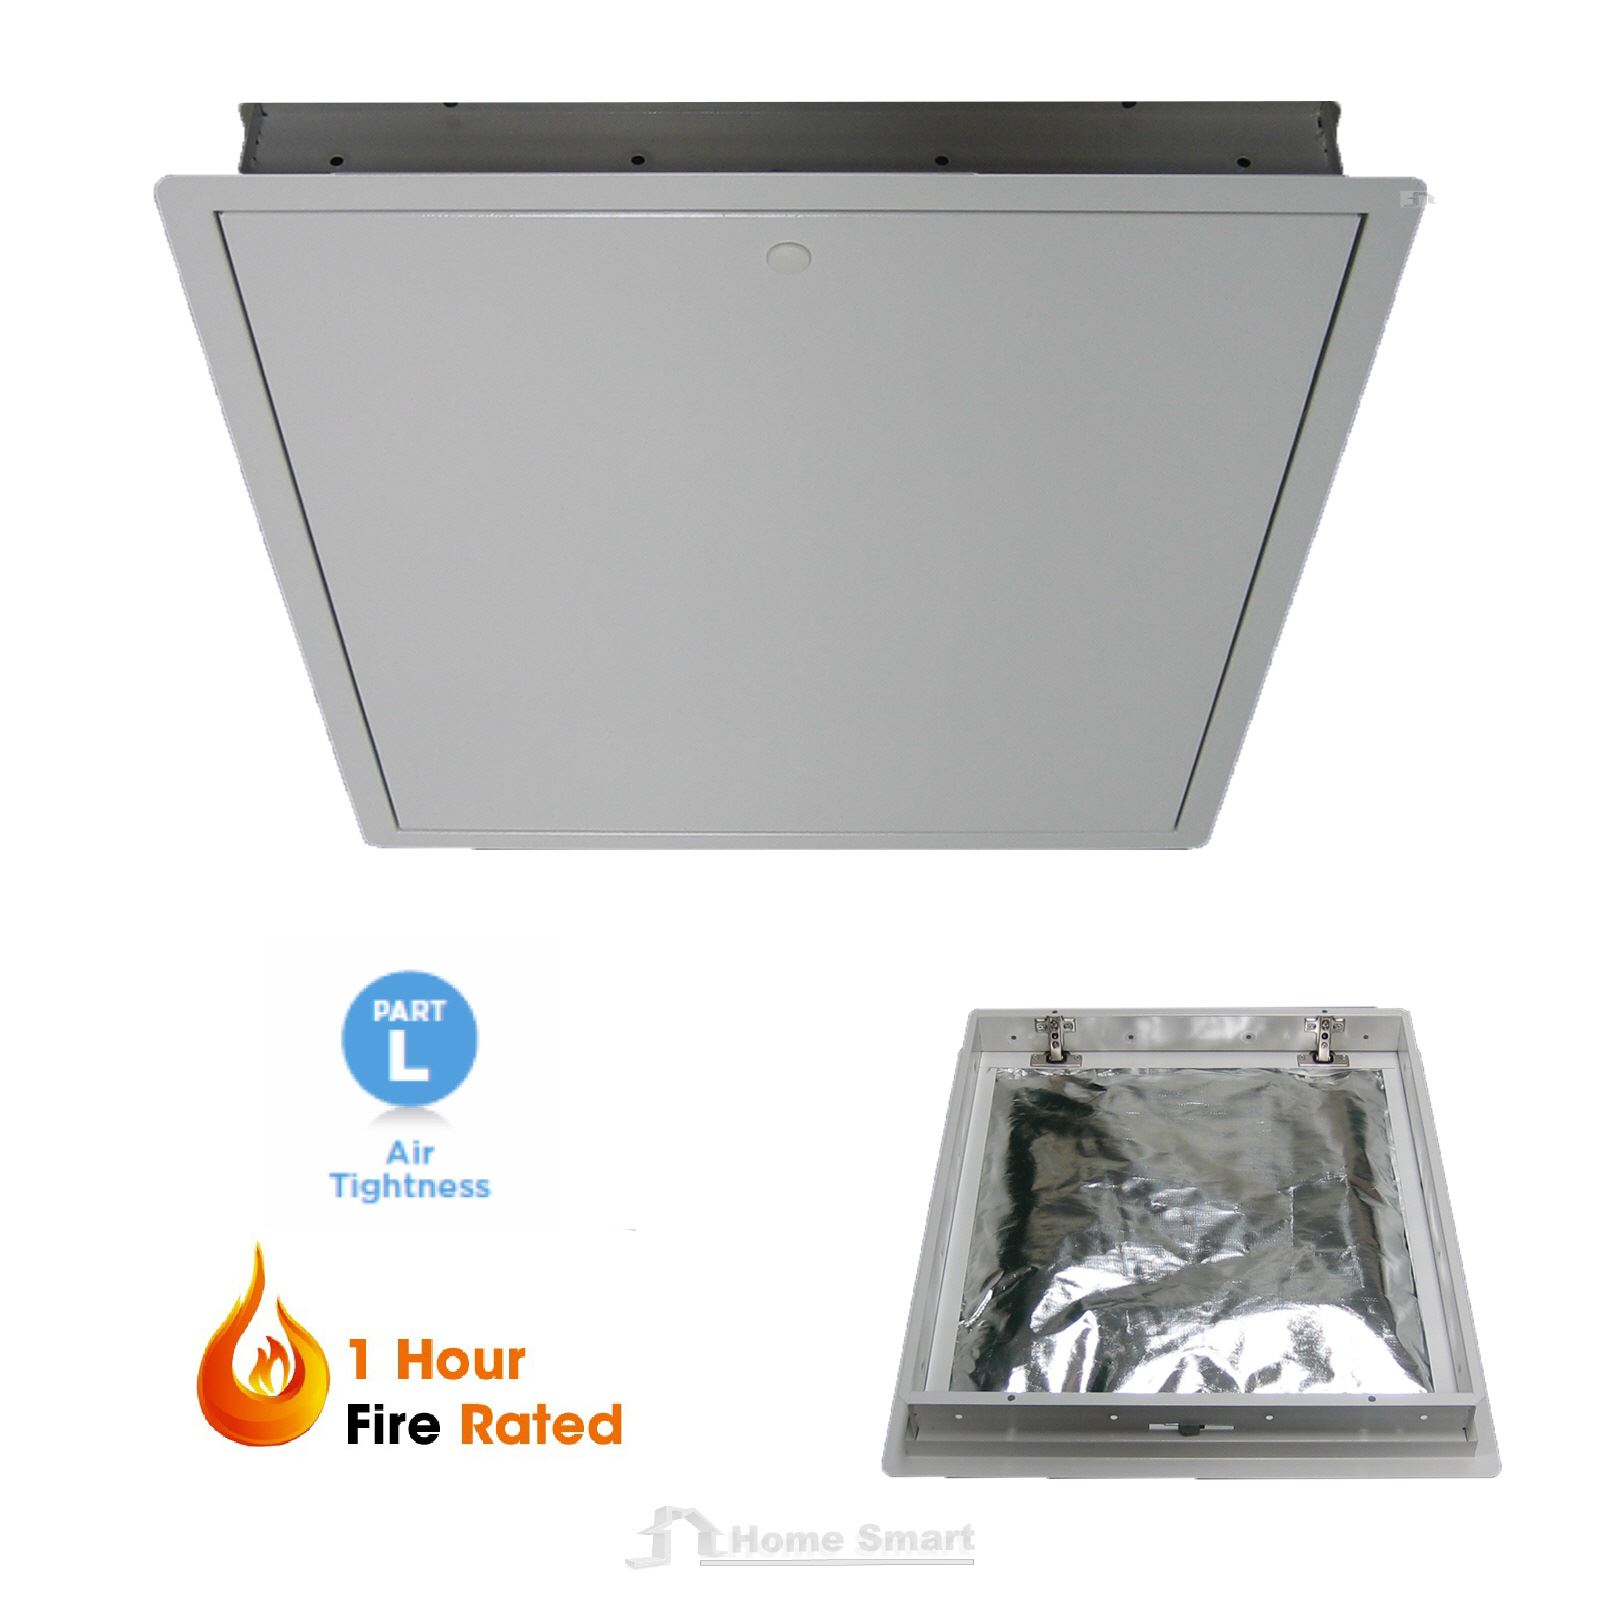 1 hour fire rated 542 x 740 steel loft trap door hinged for 1 hr rated door